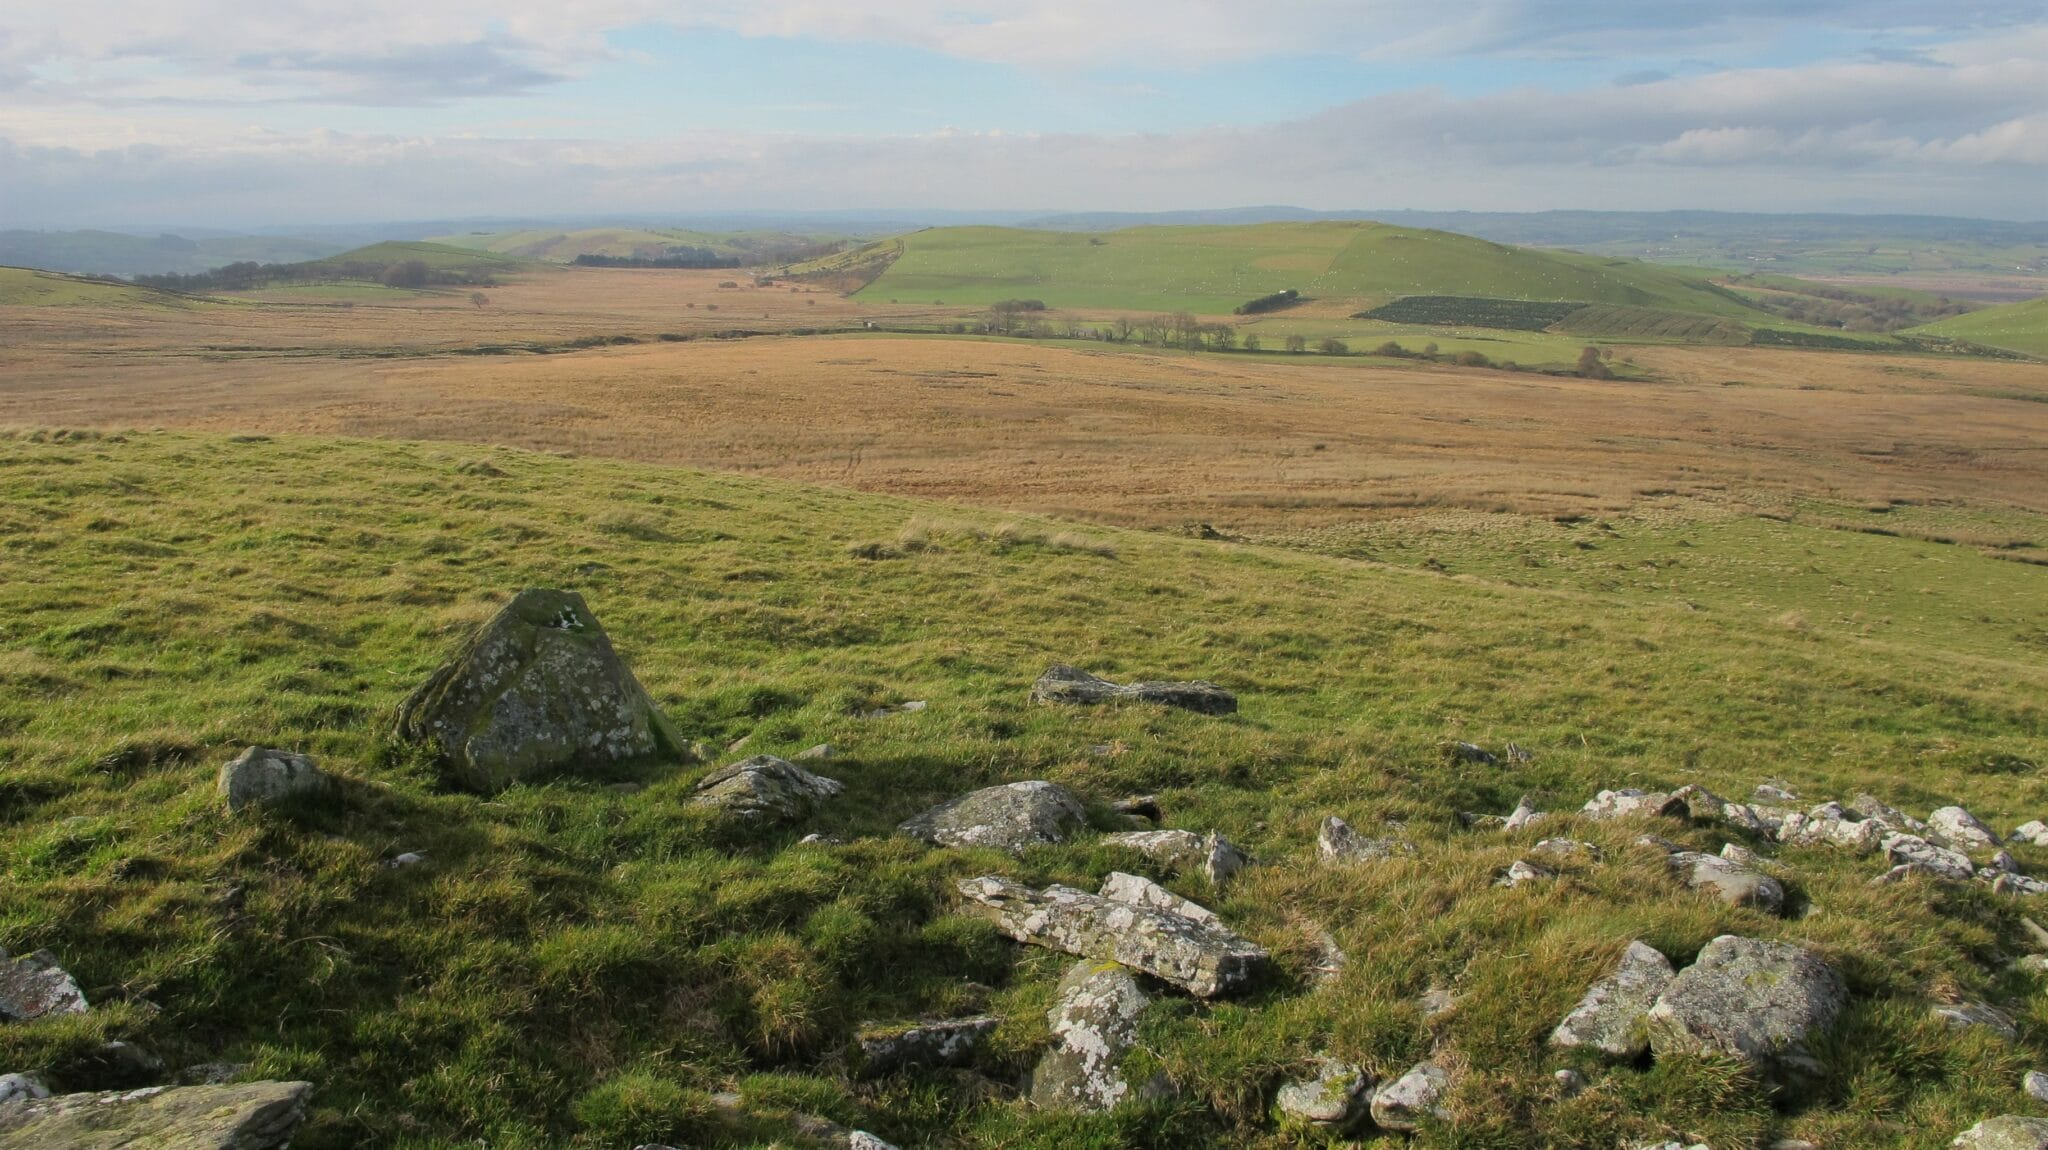 Rhos Gelli Gron common, by Peter Foulkes